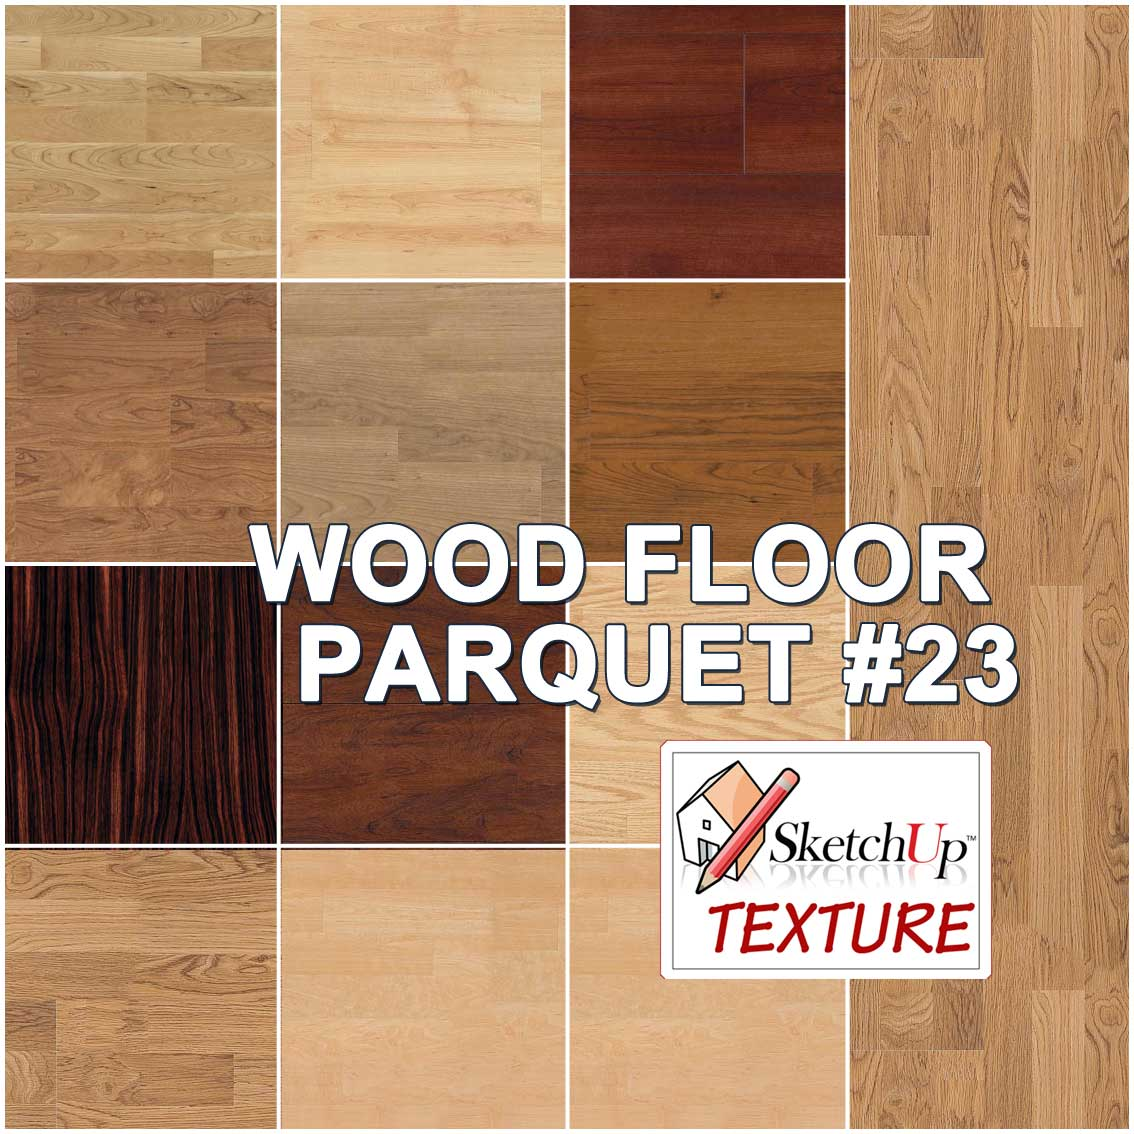 Inspirations wood floors texture sketchup texture update news wood -  Seamless Wood Parquet Texture To